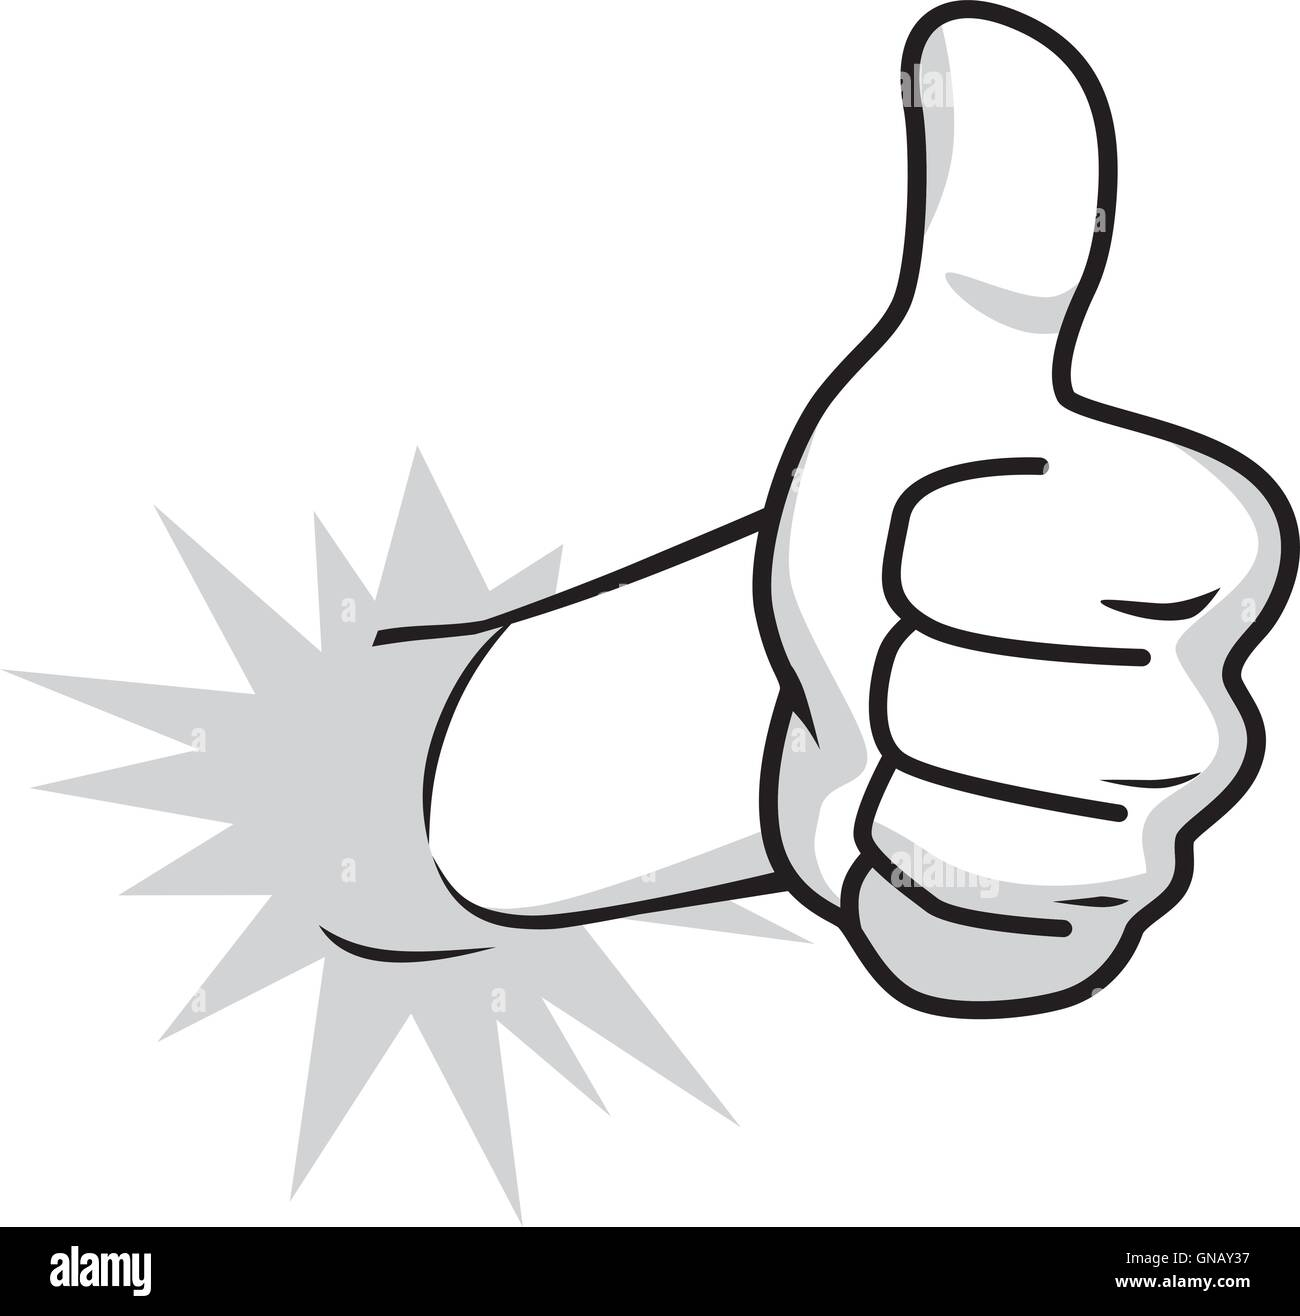 cartoon guy thumbs up high resolution stock photography and images alamy https www alamy com stock photo cartoon guy thumbs up 116410763 html